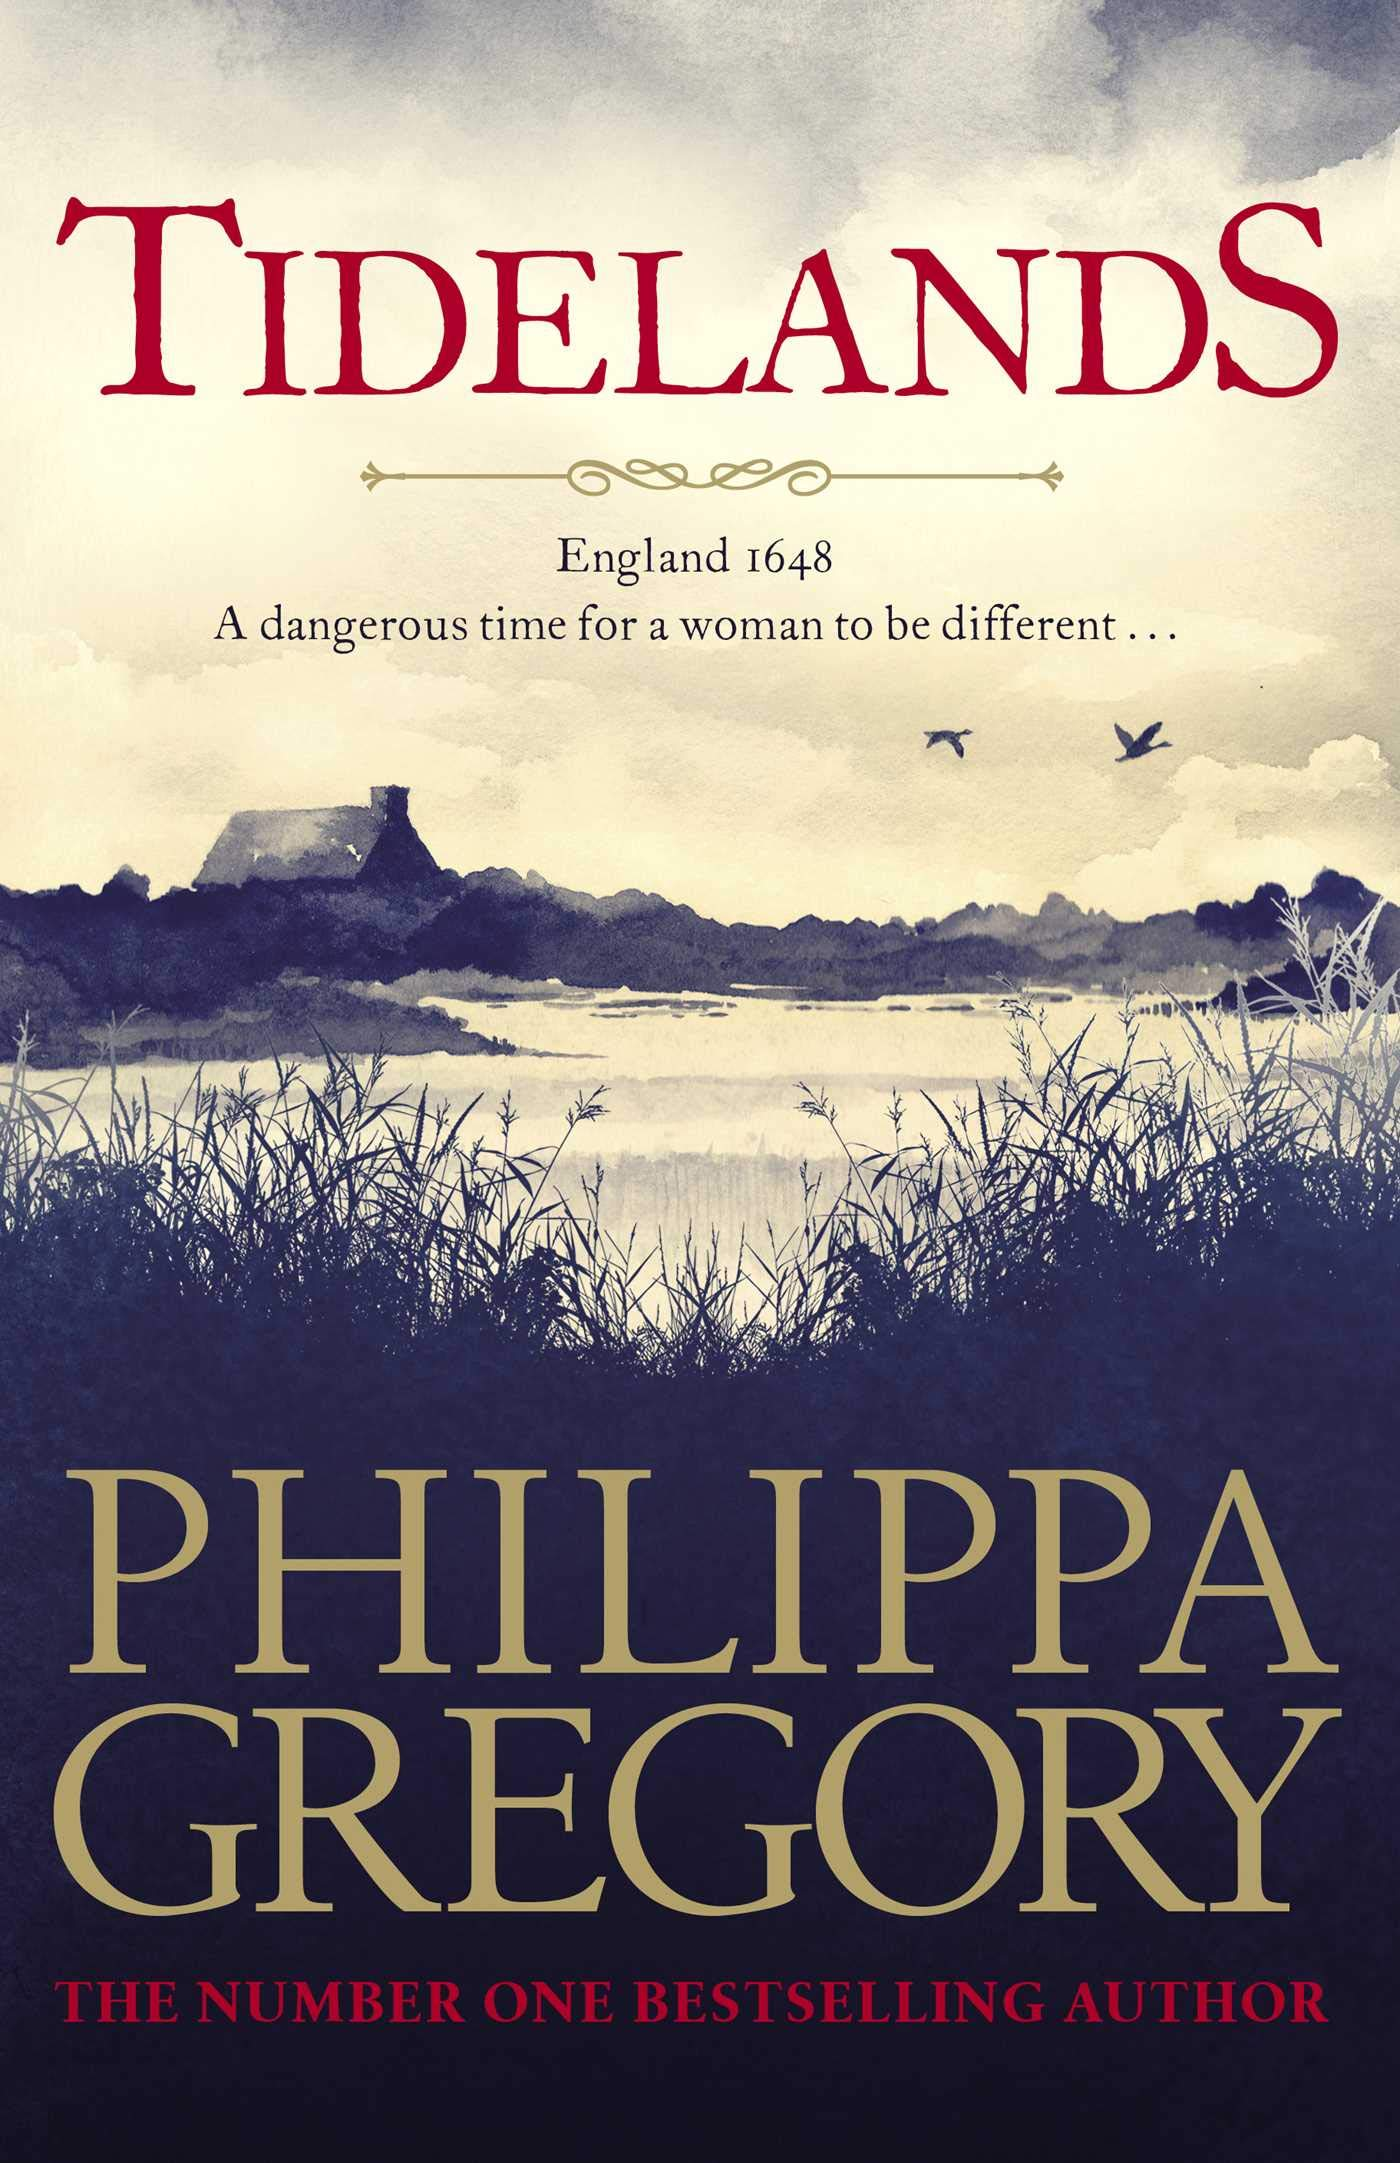 TIDELANDS WITH PHILIPPA GREGORY